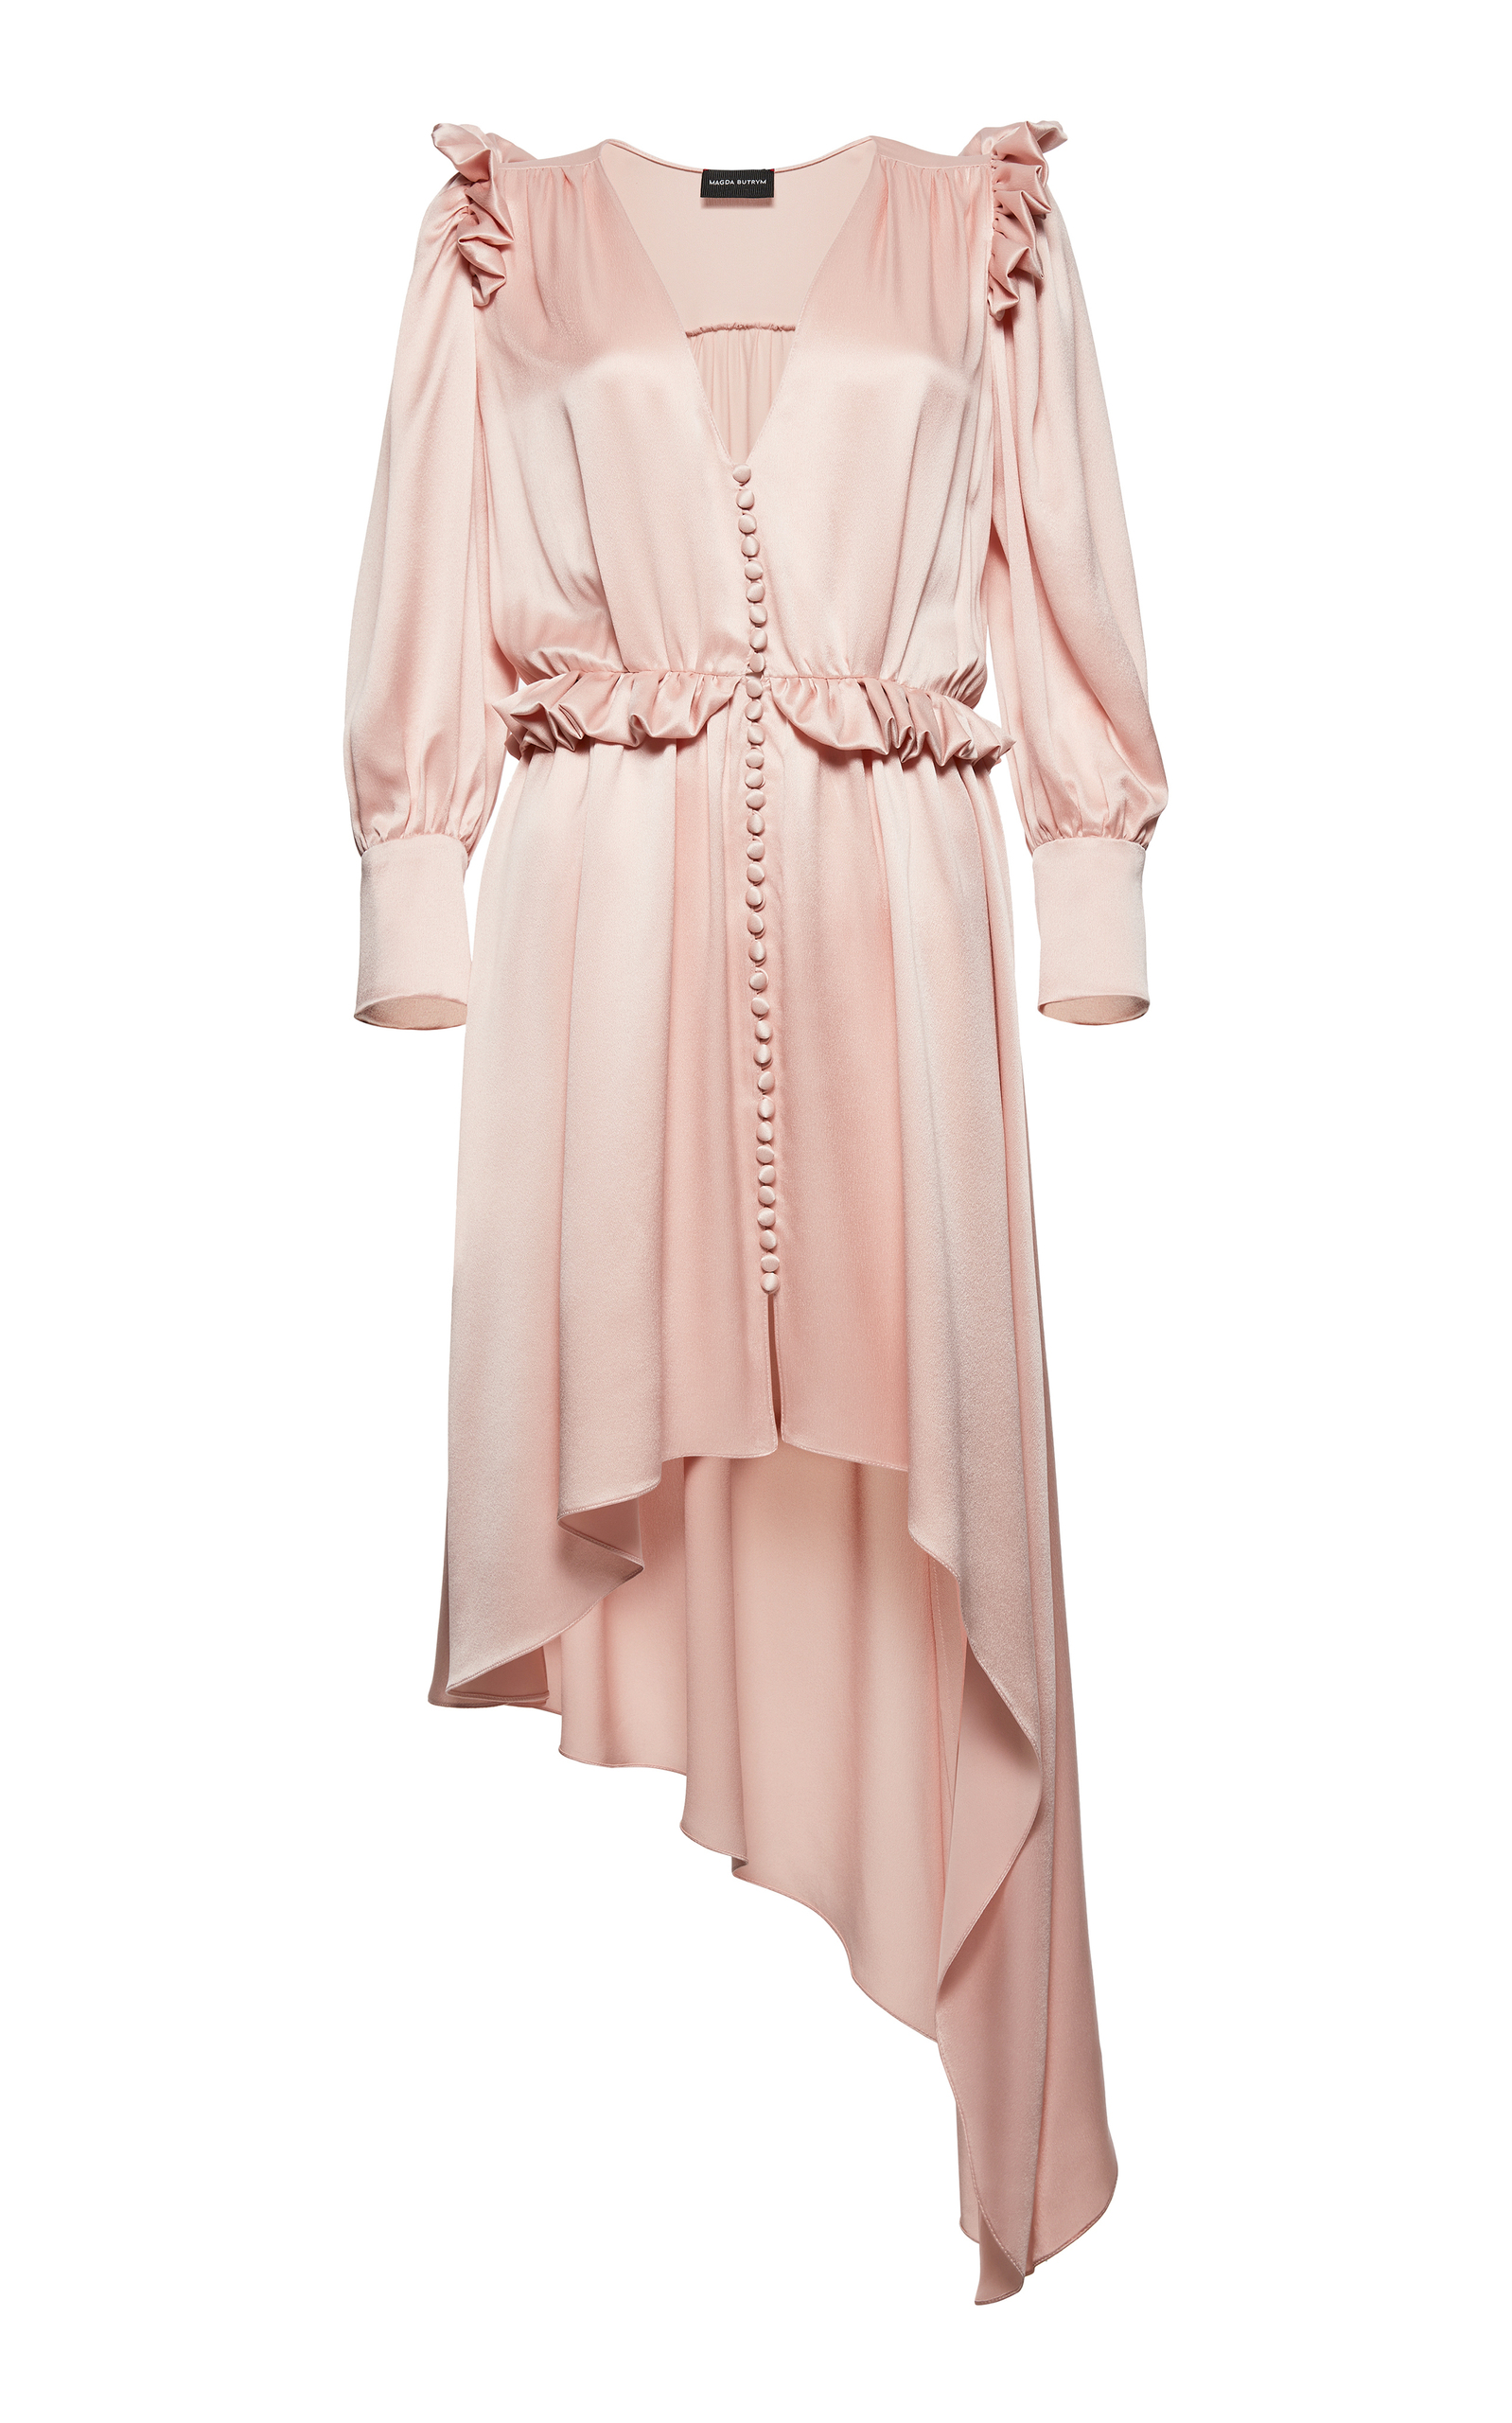 Tarragona Asymmetric Ruffled Silk-Satin Dress in Pink